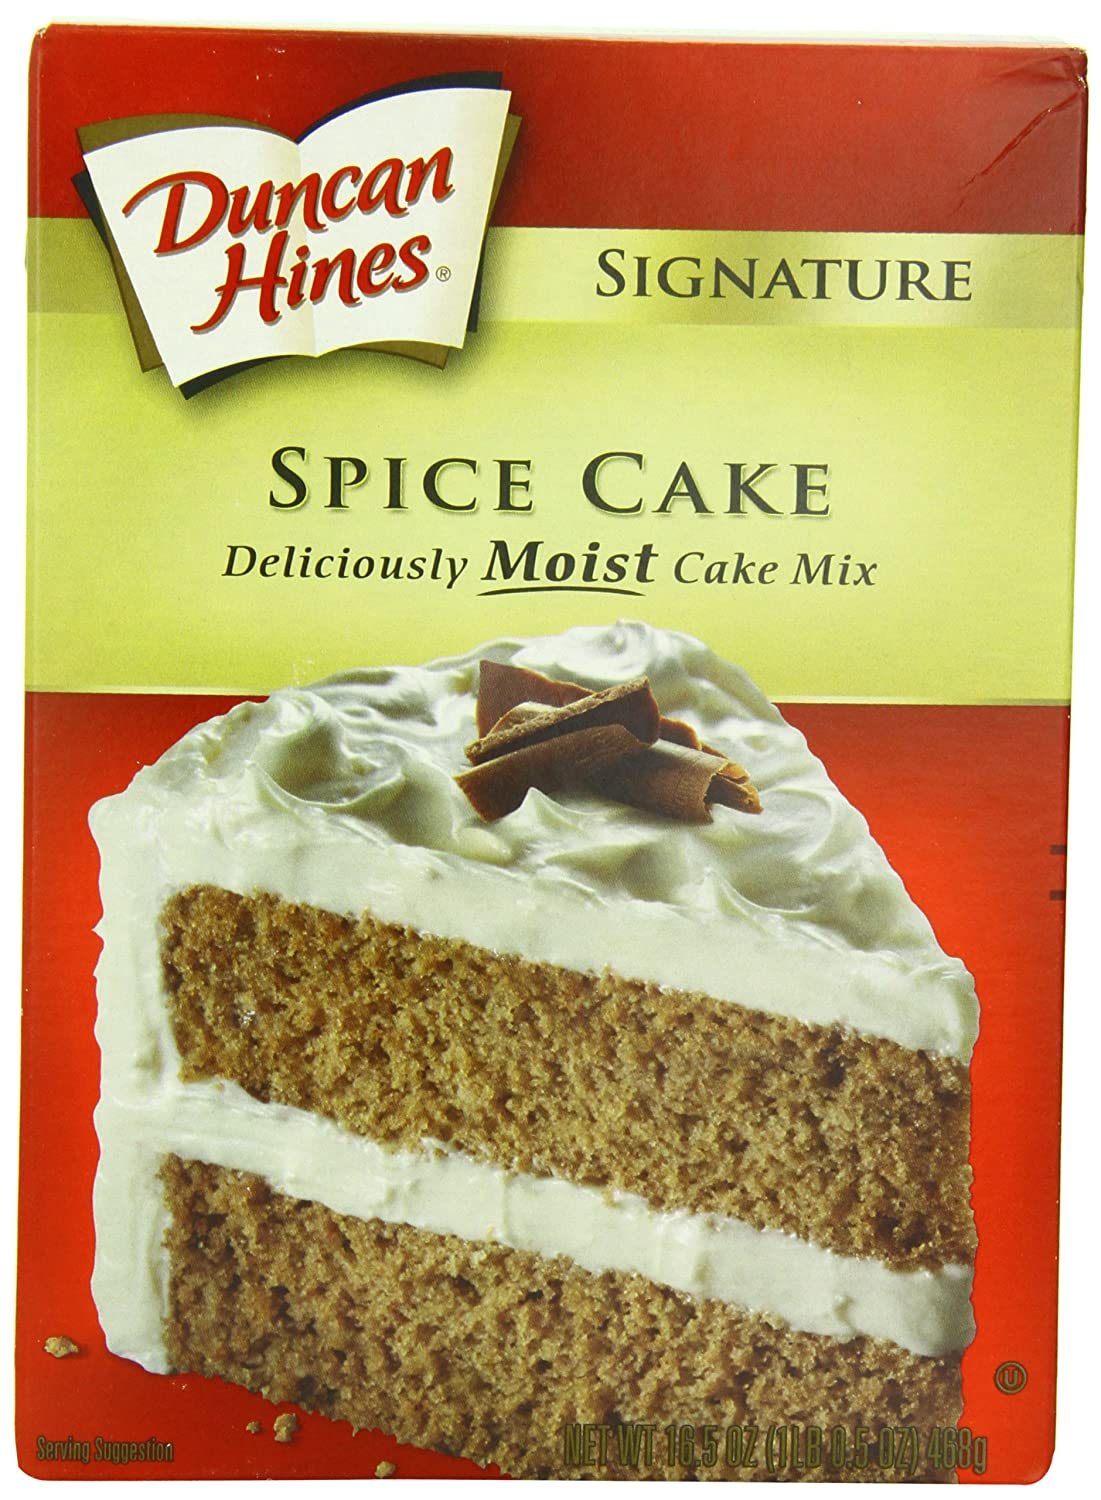 Duncan Hines Spice Cake Recipe With Cream Cheese Frosting